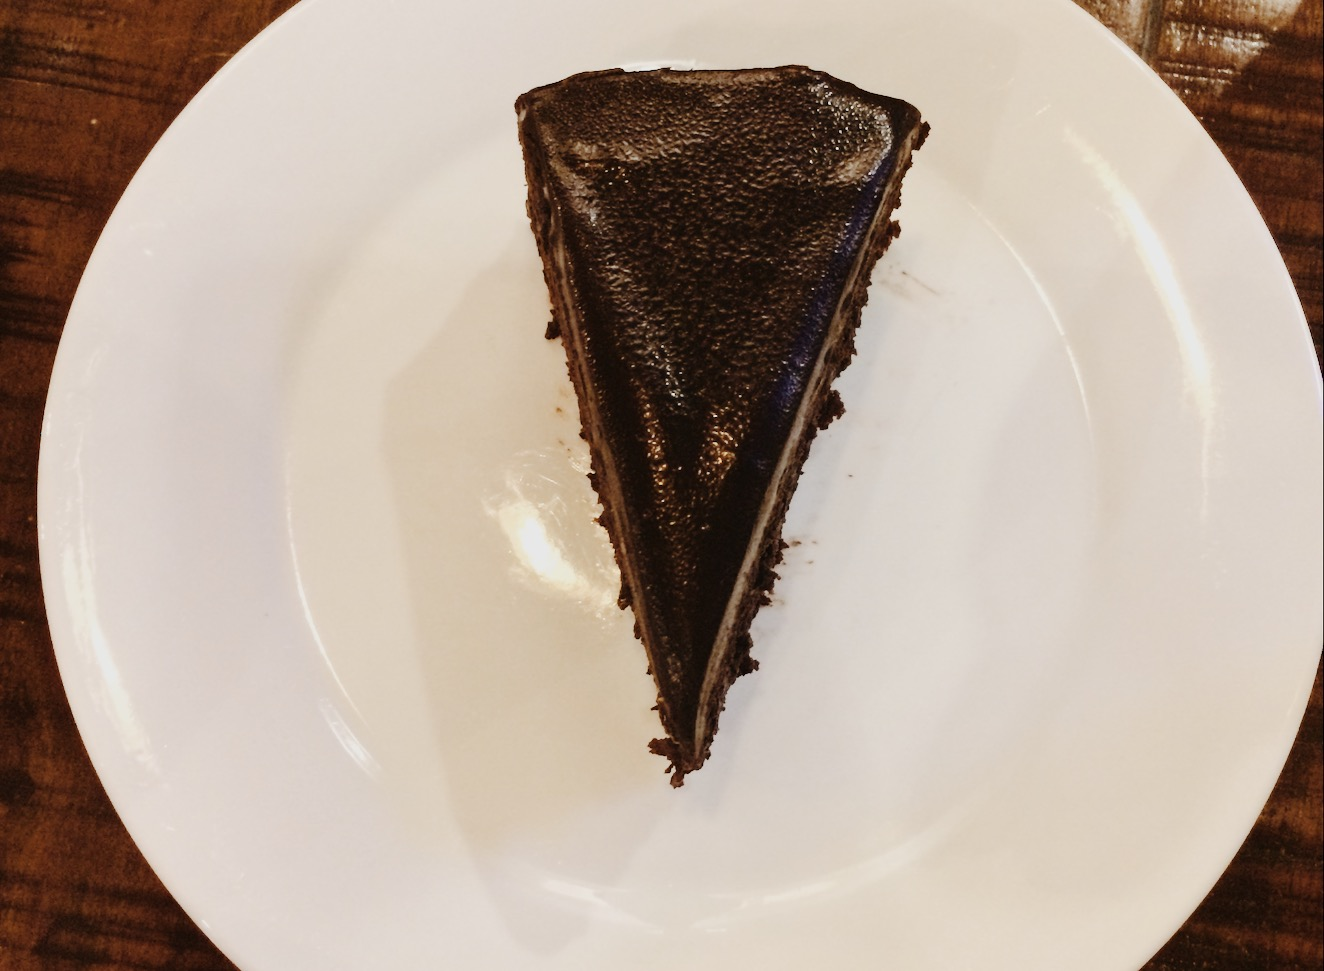 Chocolate Cake at Ma'an Coffee Factory